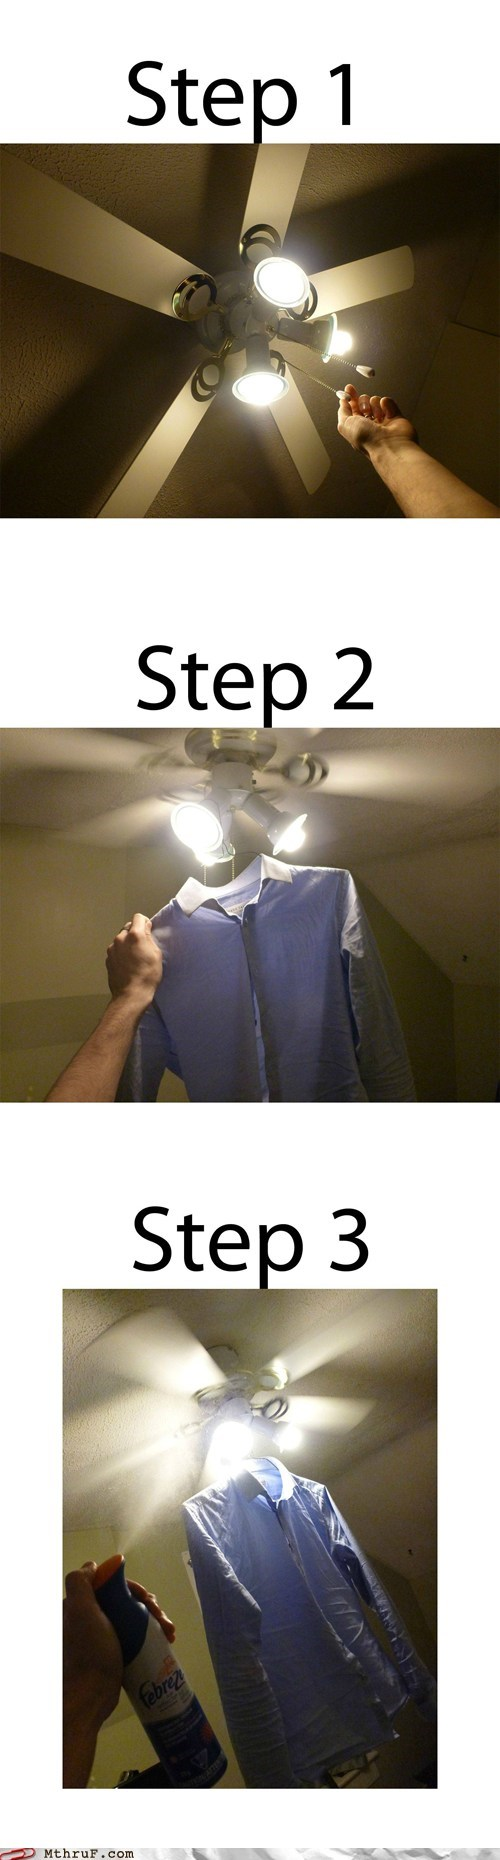 ceiling fan febreeze fresh shirt - 5916364032